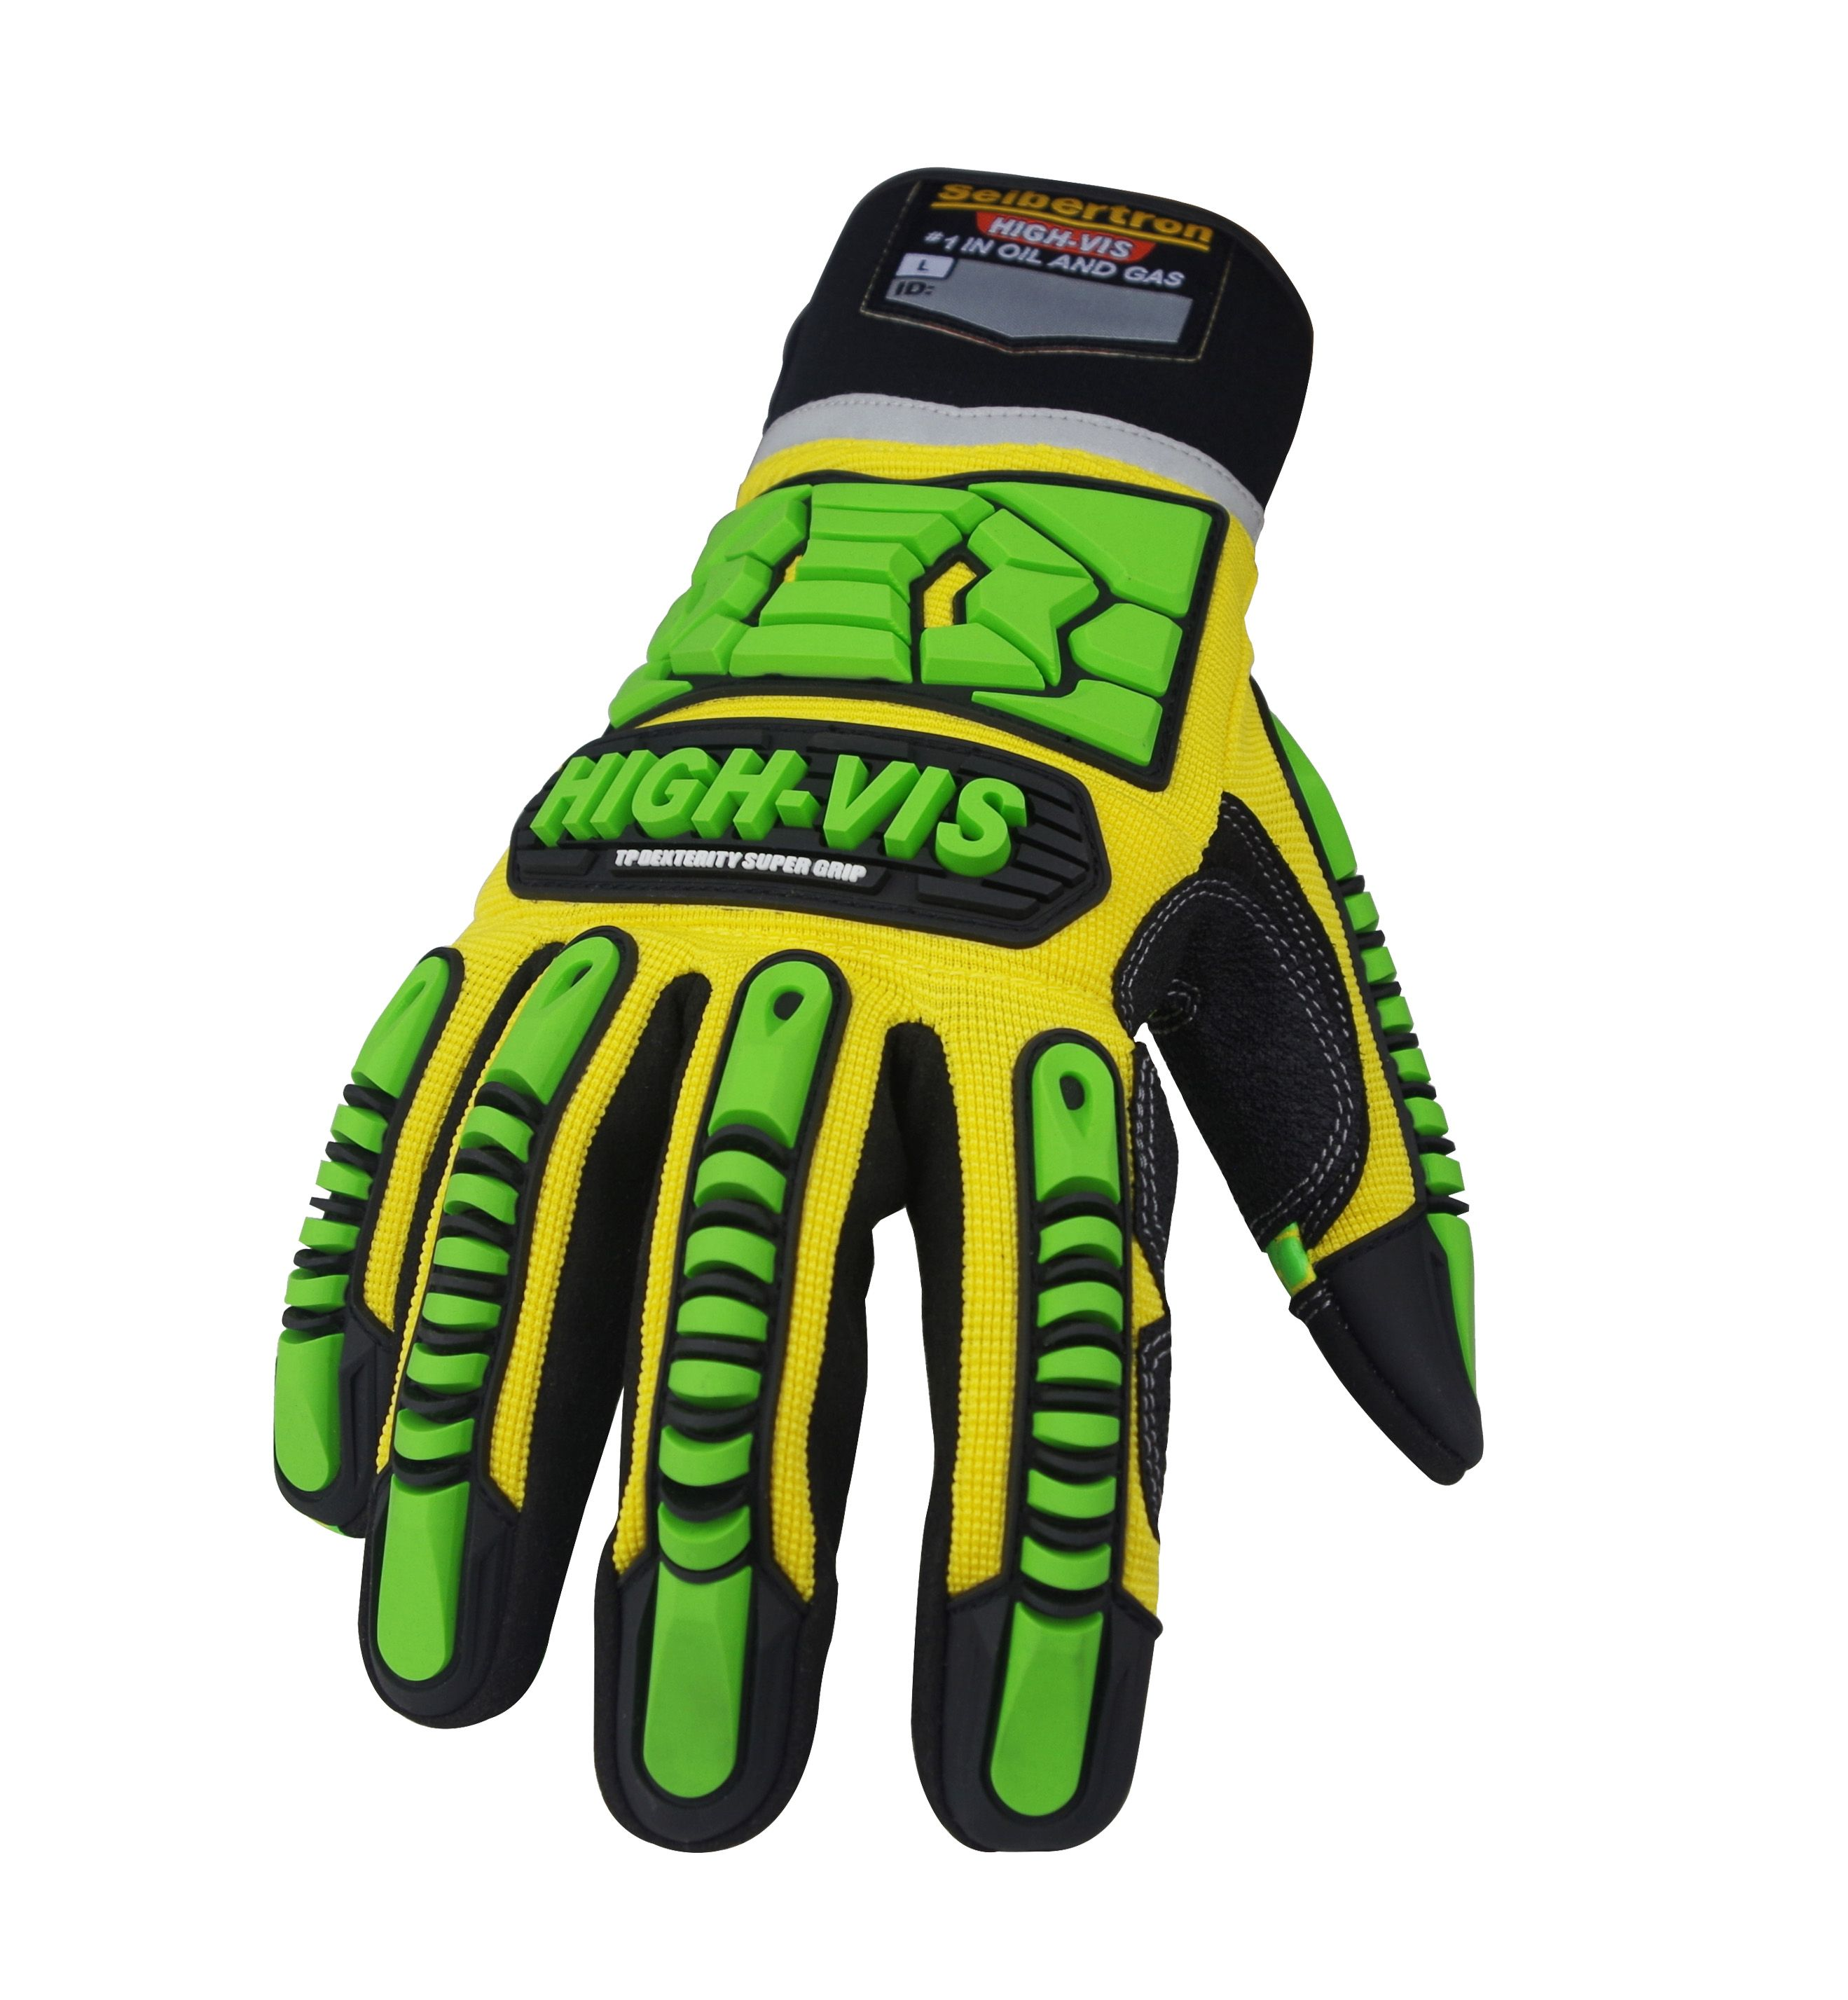 protection gloves, impact gloves,safety gloves,gloves ...